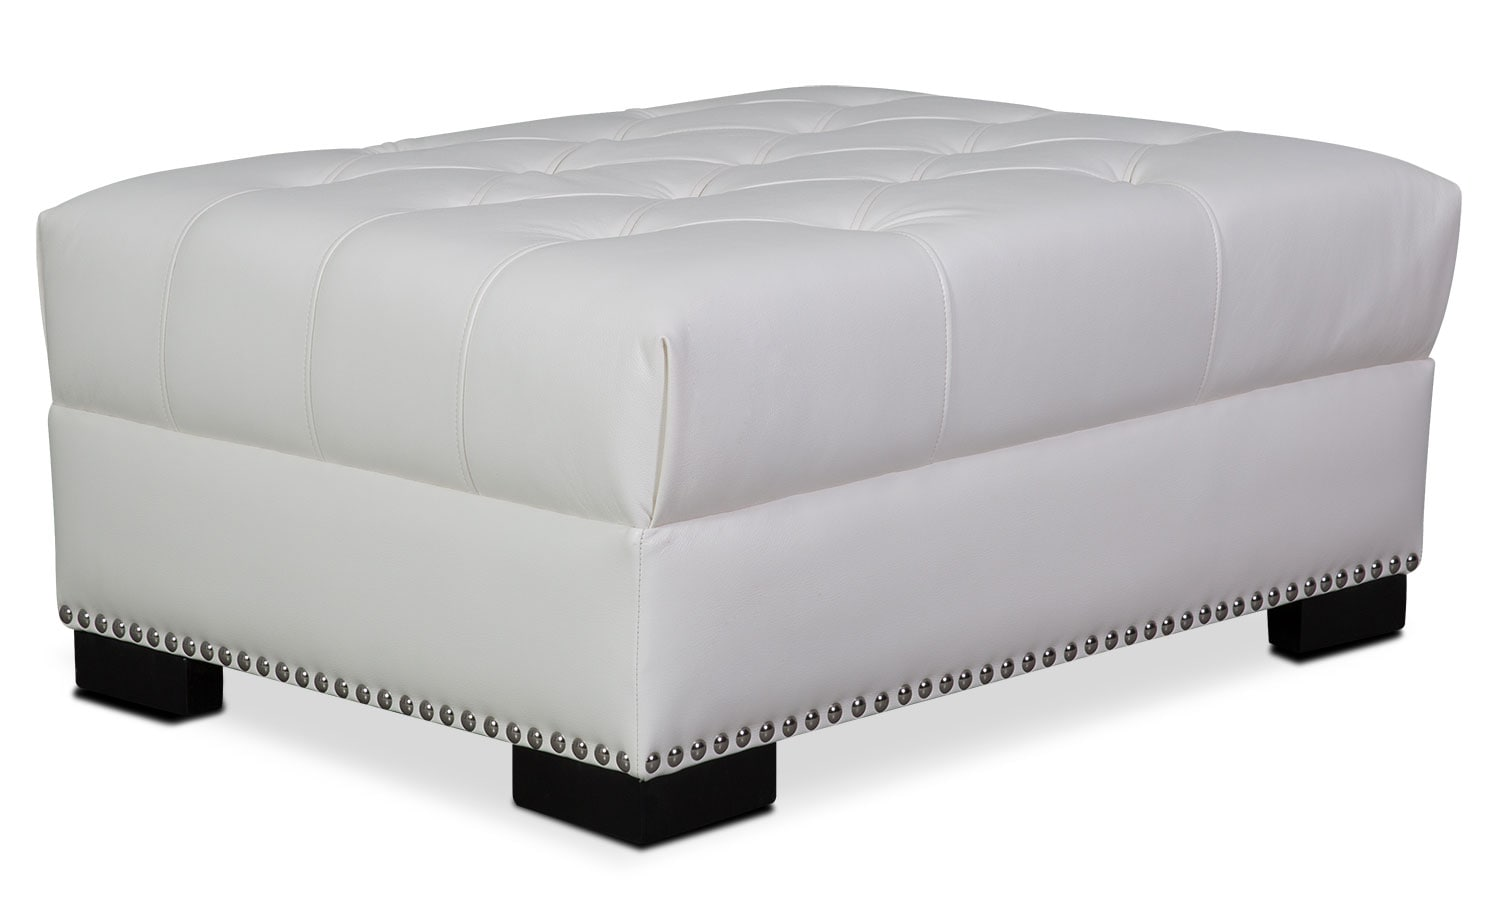 Living Room Furniture - Couture Ottoman - White